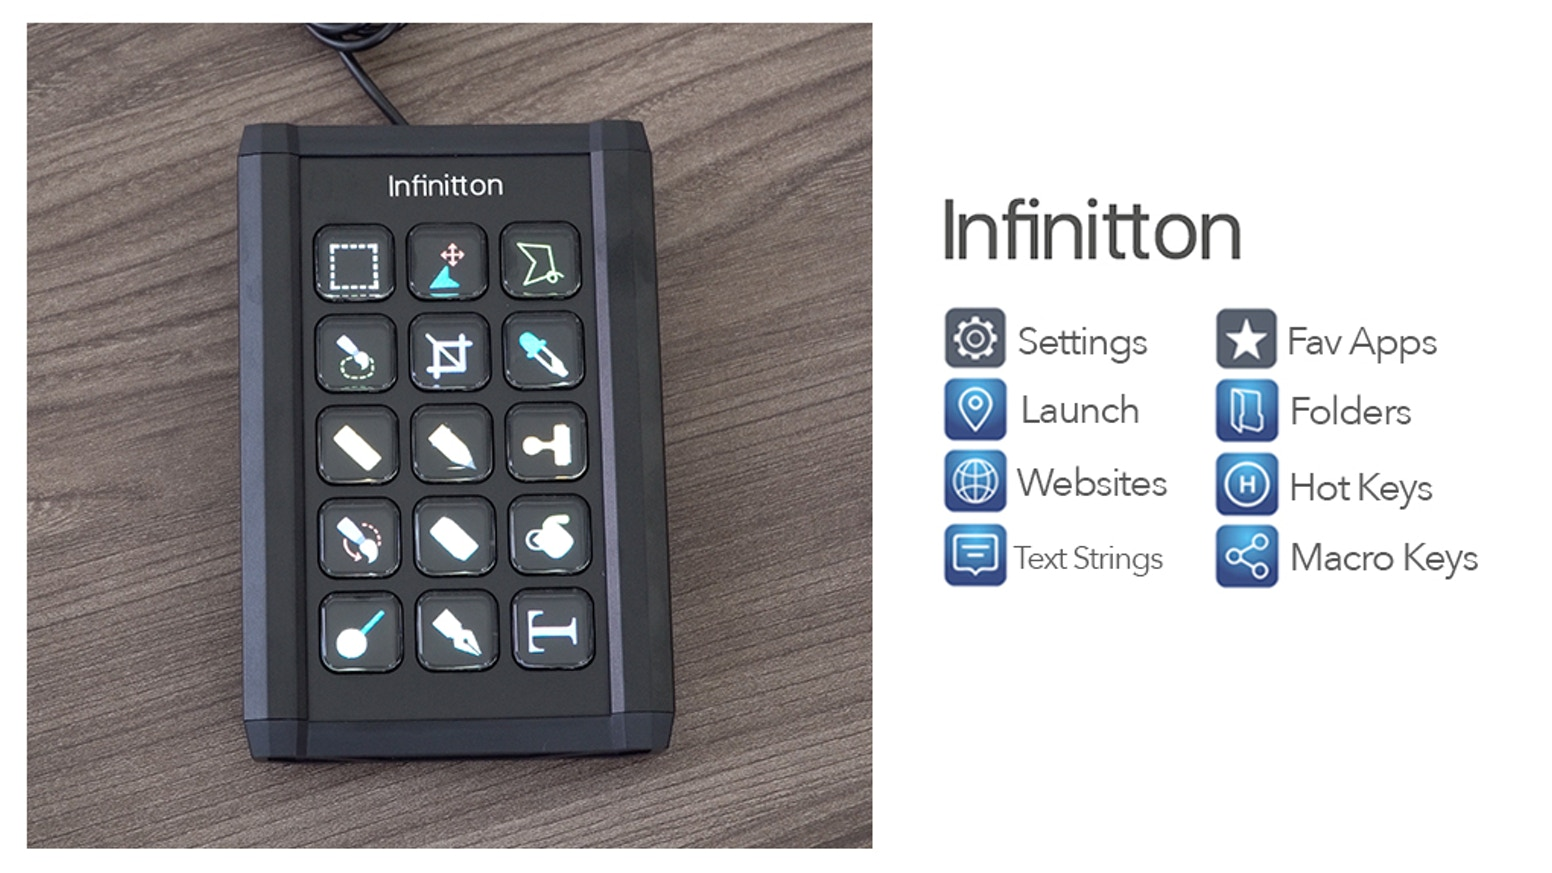 The moment you use infinitton, you know you've never felt anything like it. With a single press, infinitton lets you do more than ever before.